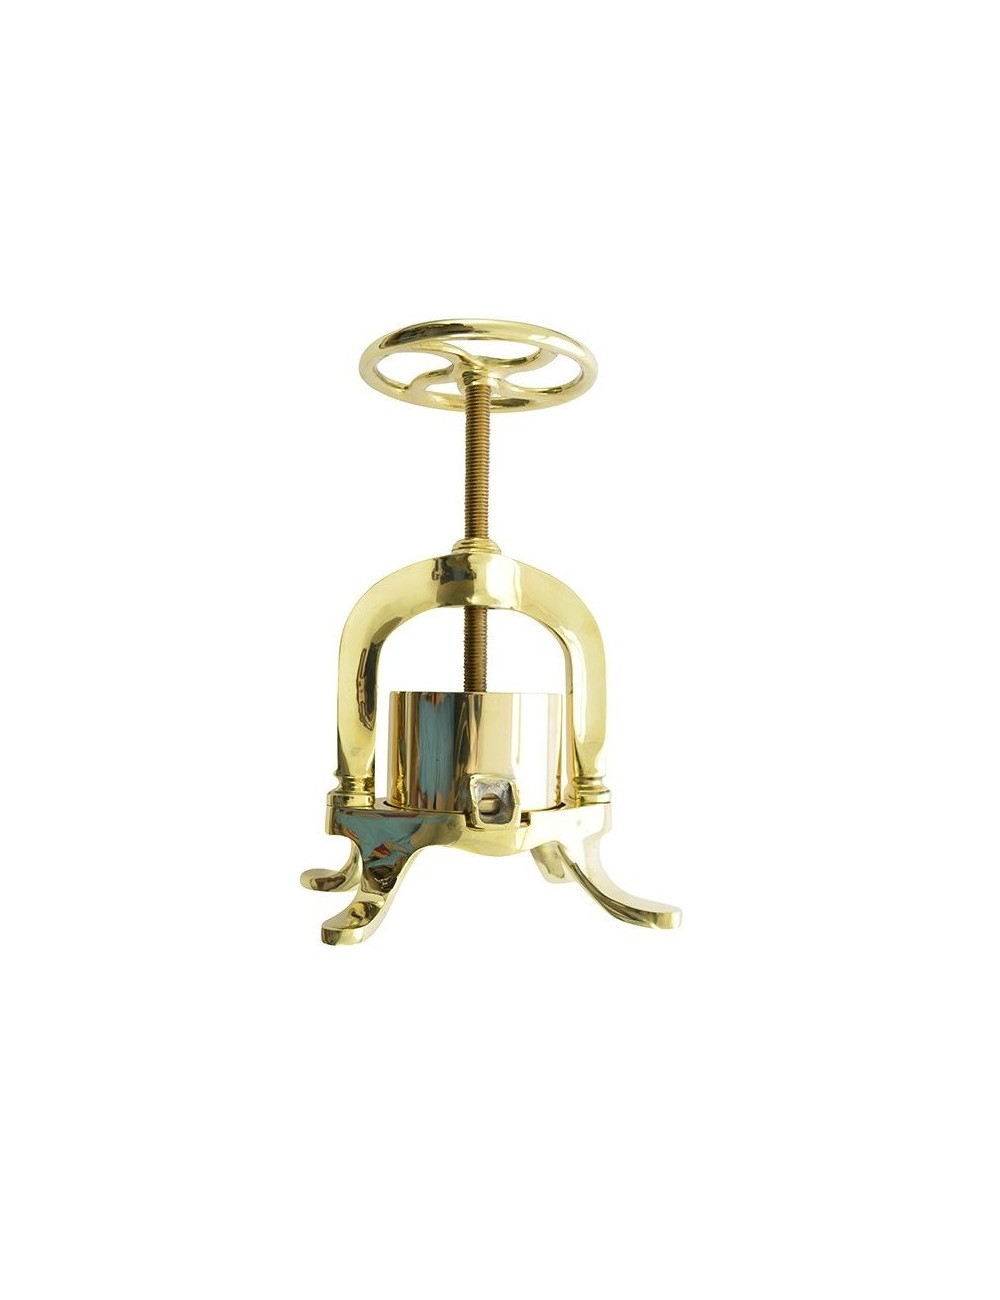 BRASS DUCK PRESS - SMALL MODEL